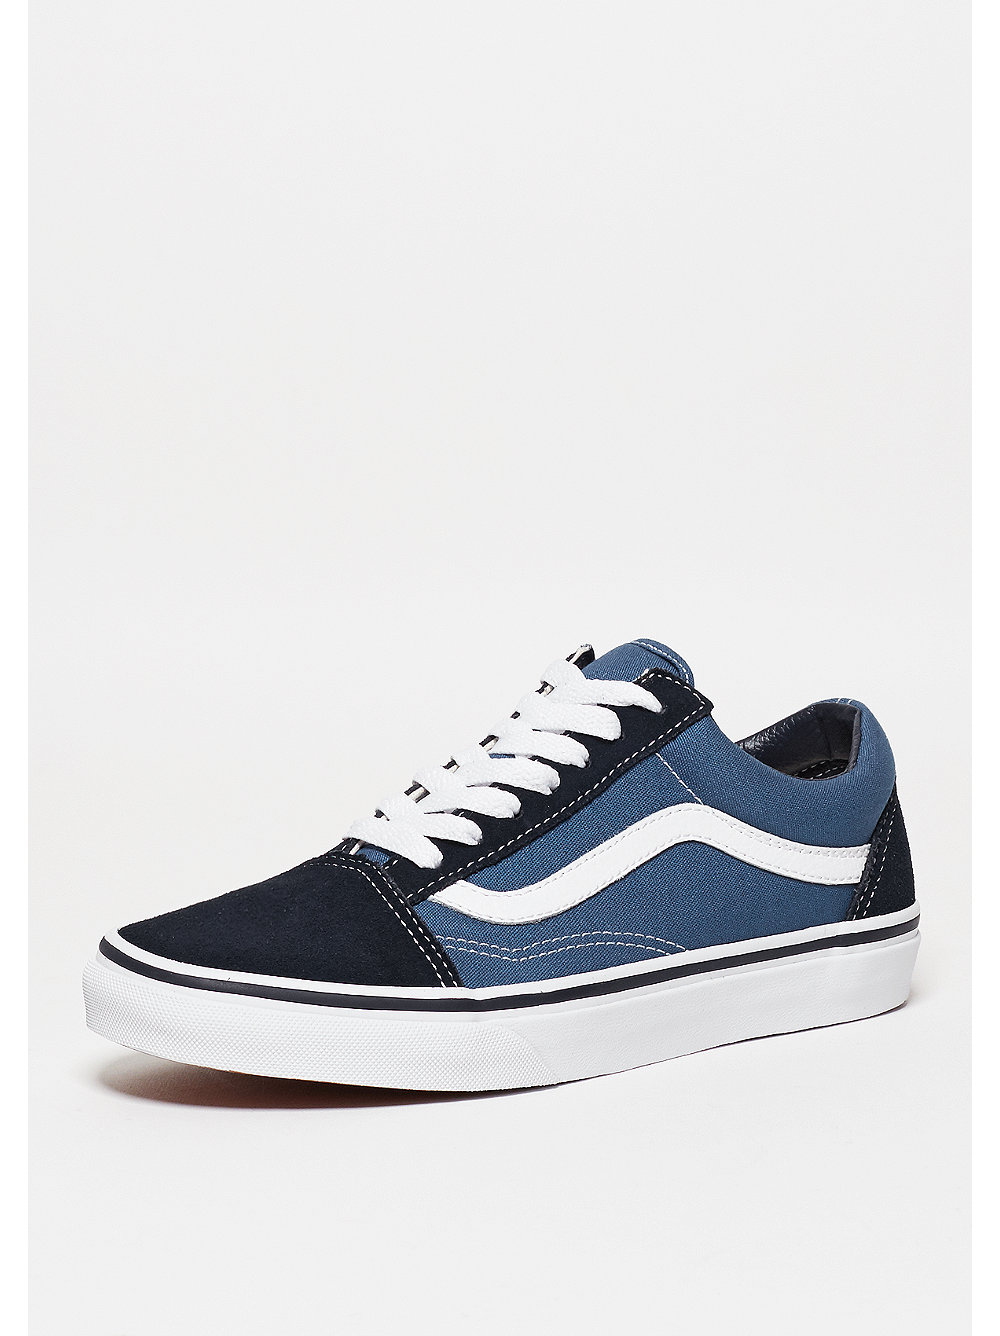 vans old skool navy bei snipes bestellen. Black Bedroom Furniture Sets. Home Design Ideas